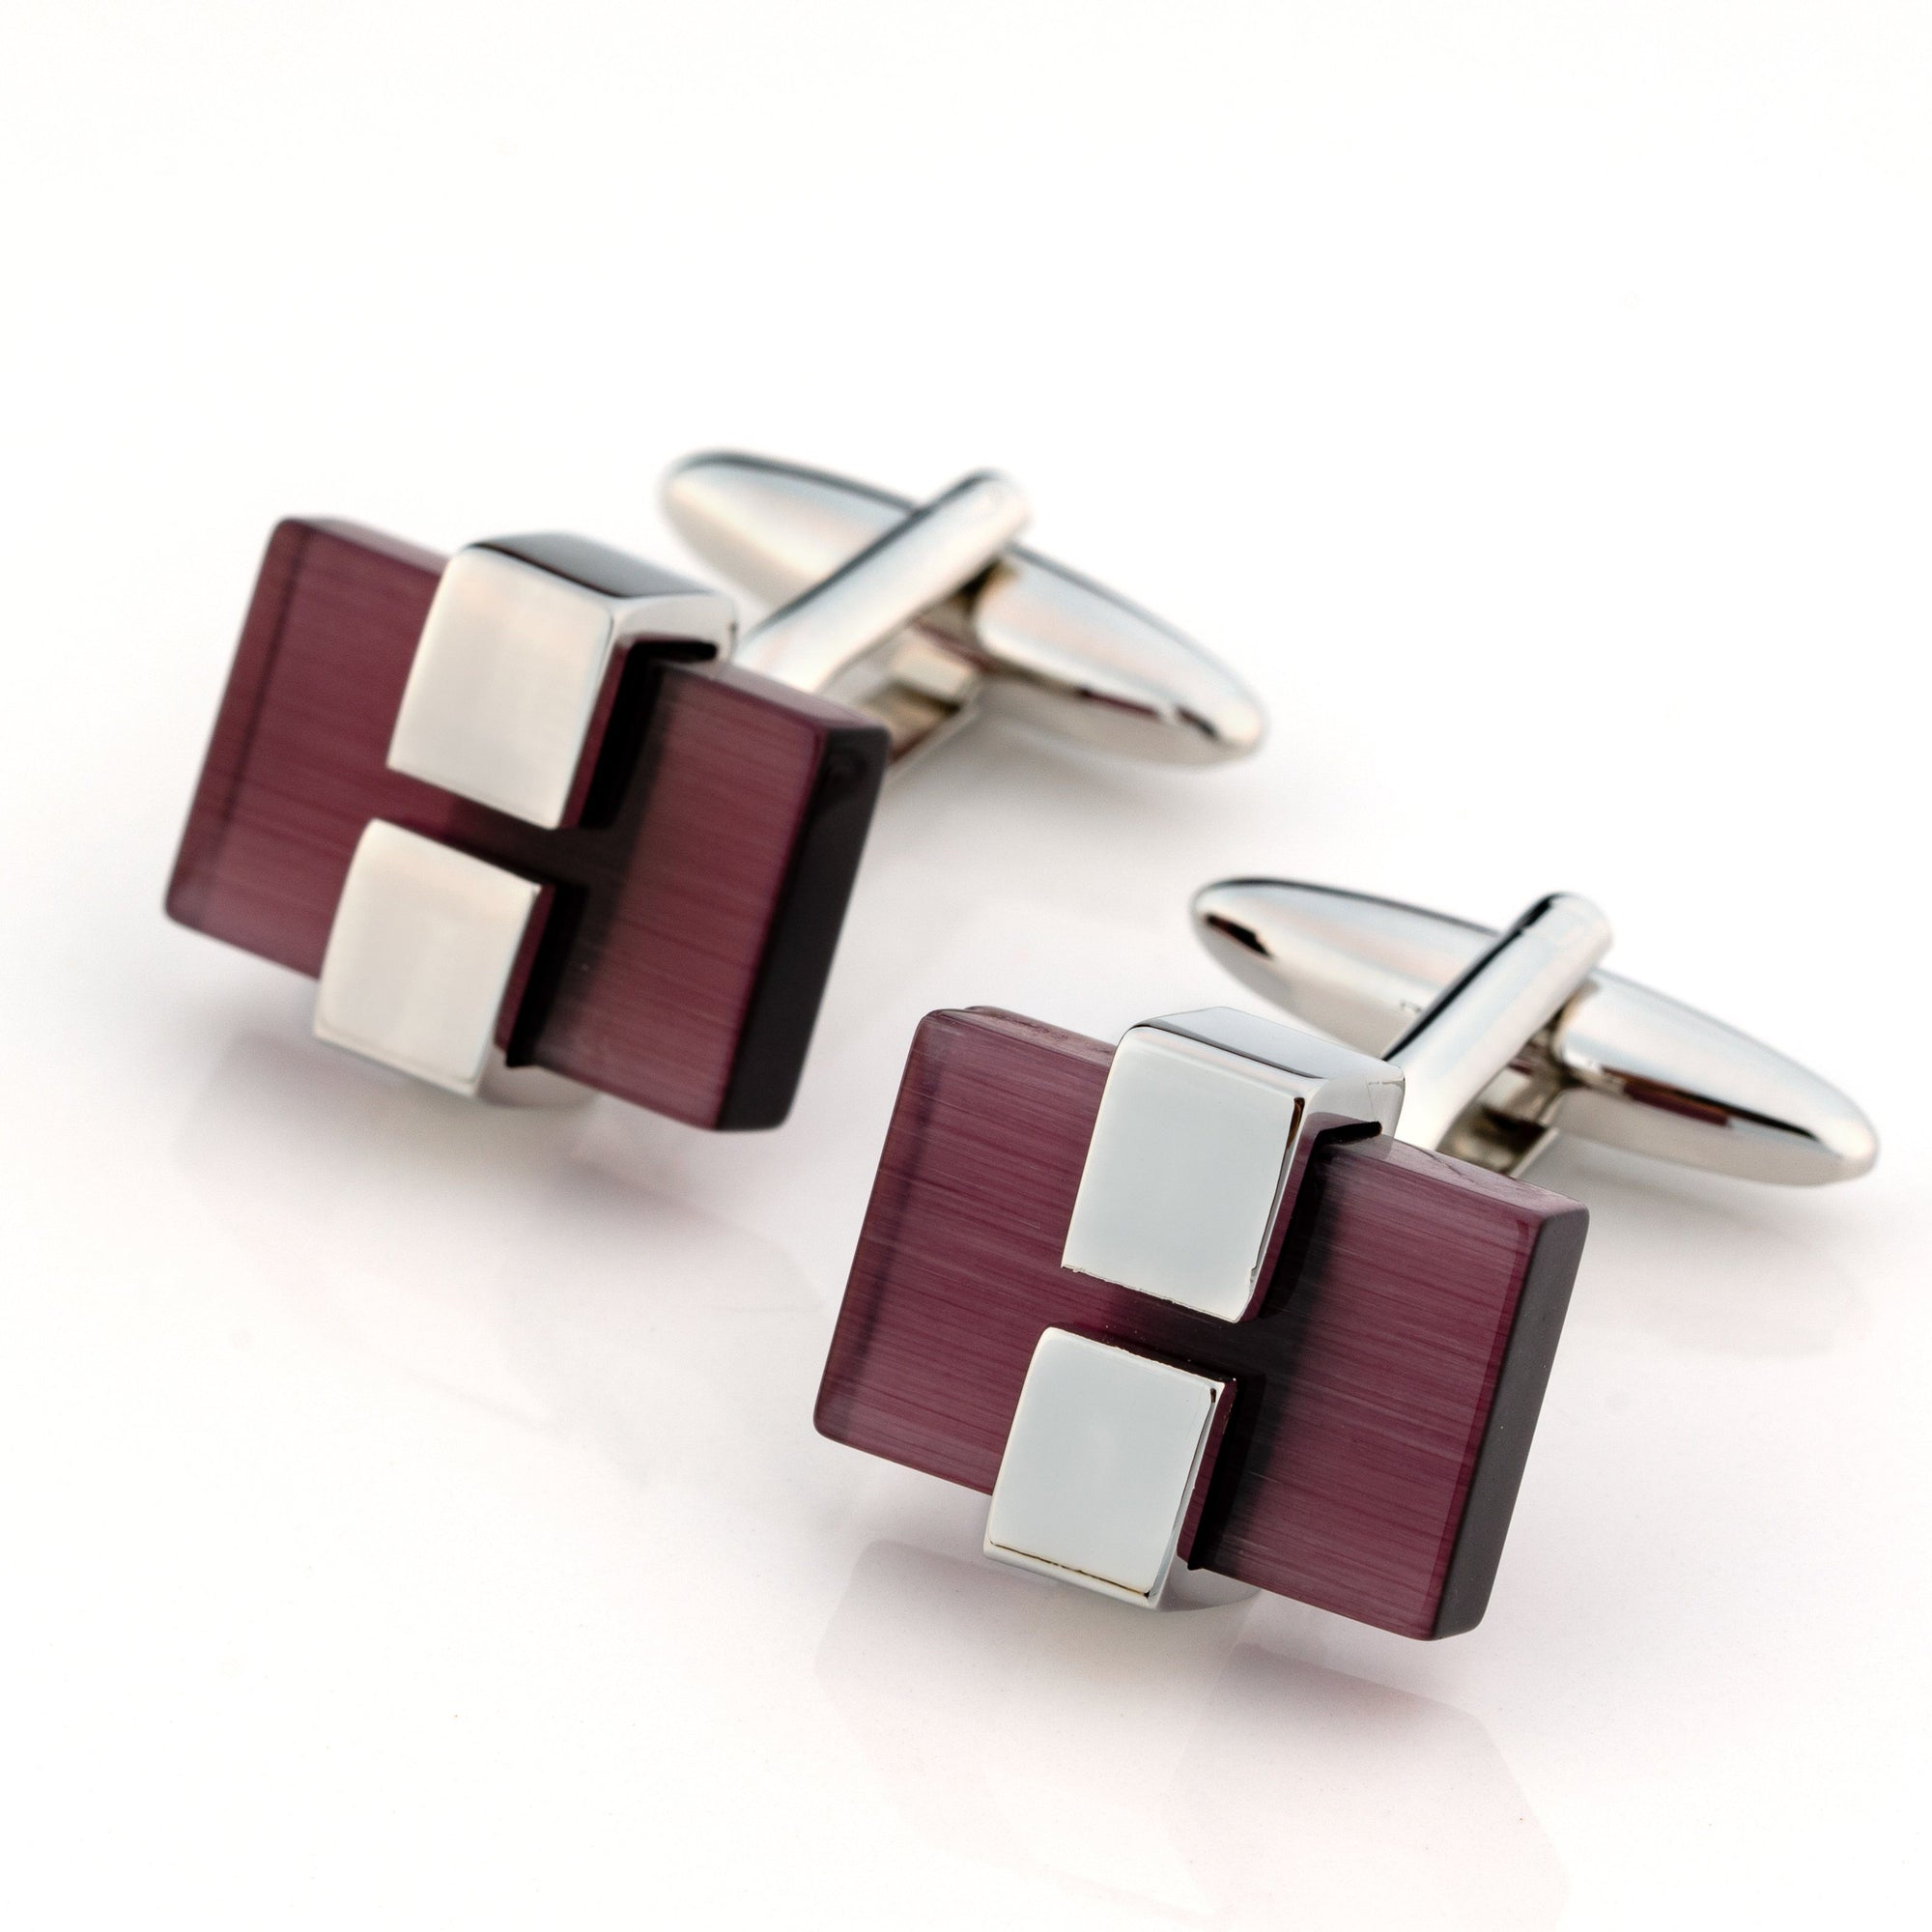 Charcoal Ice Cateye Cufflinks Classic & Modern Cufflinks Clinks Australia